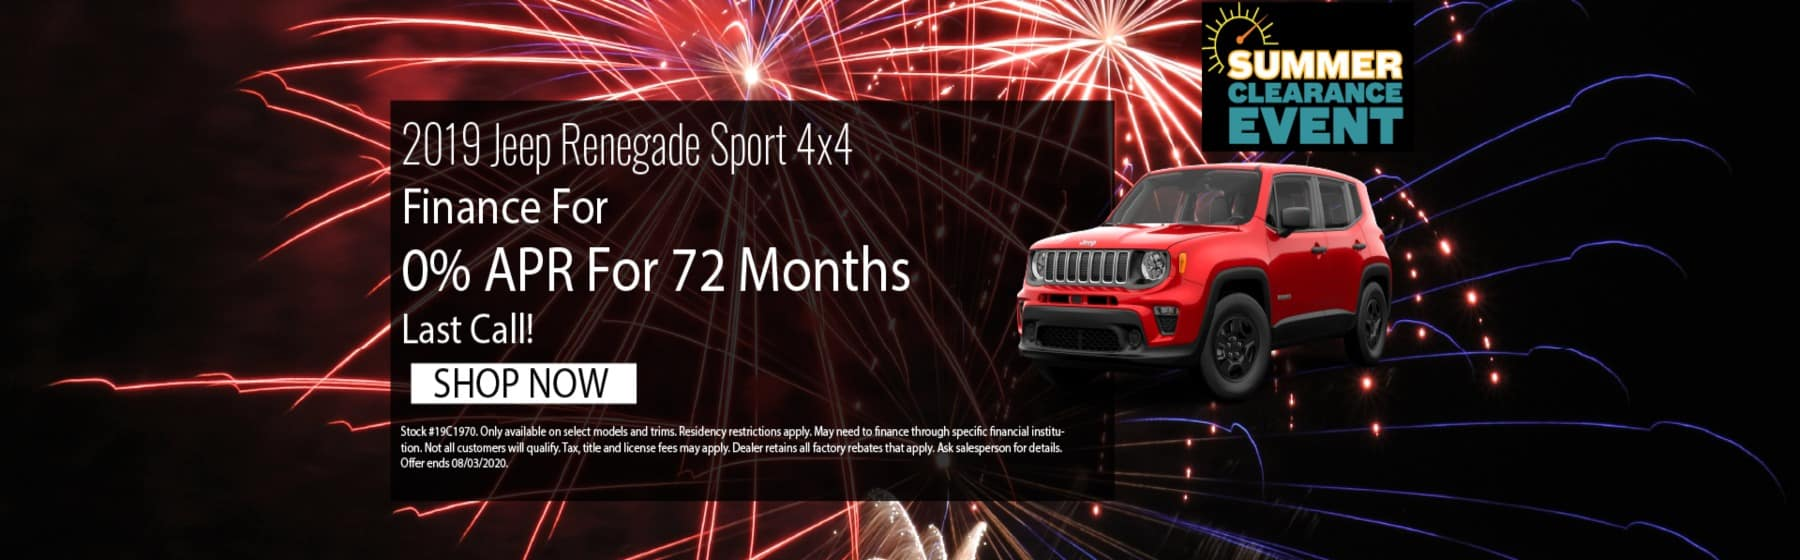 2019 Jeep Renegade July Offer